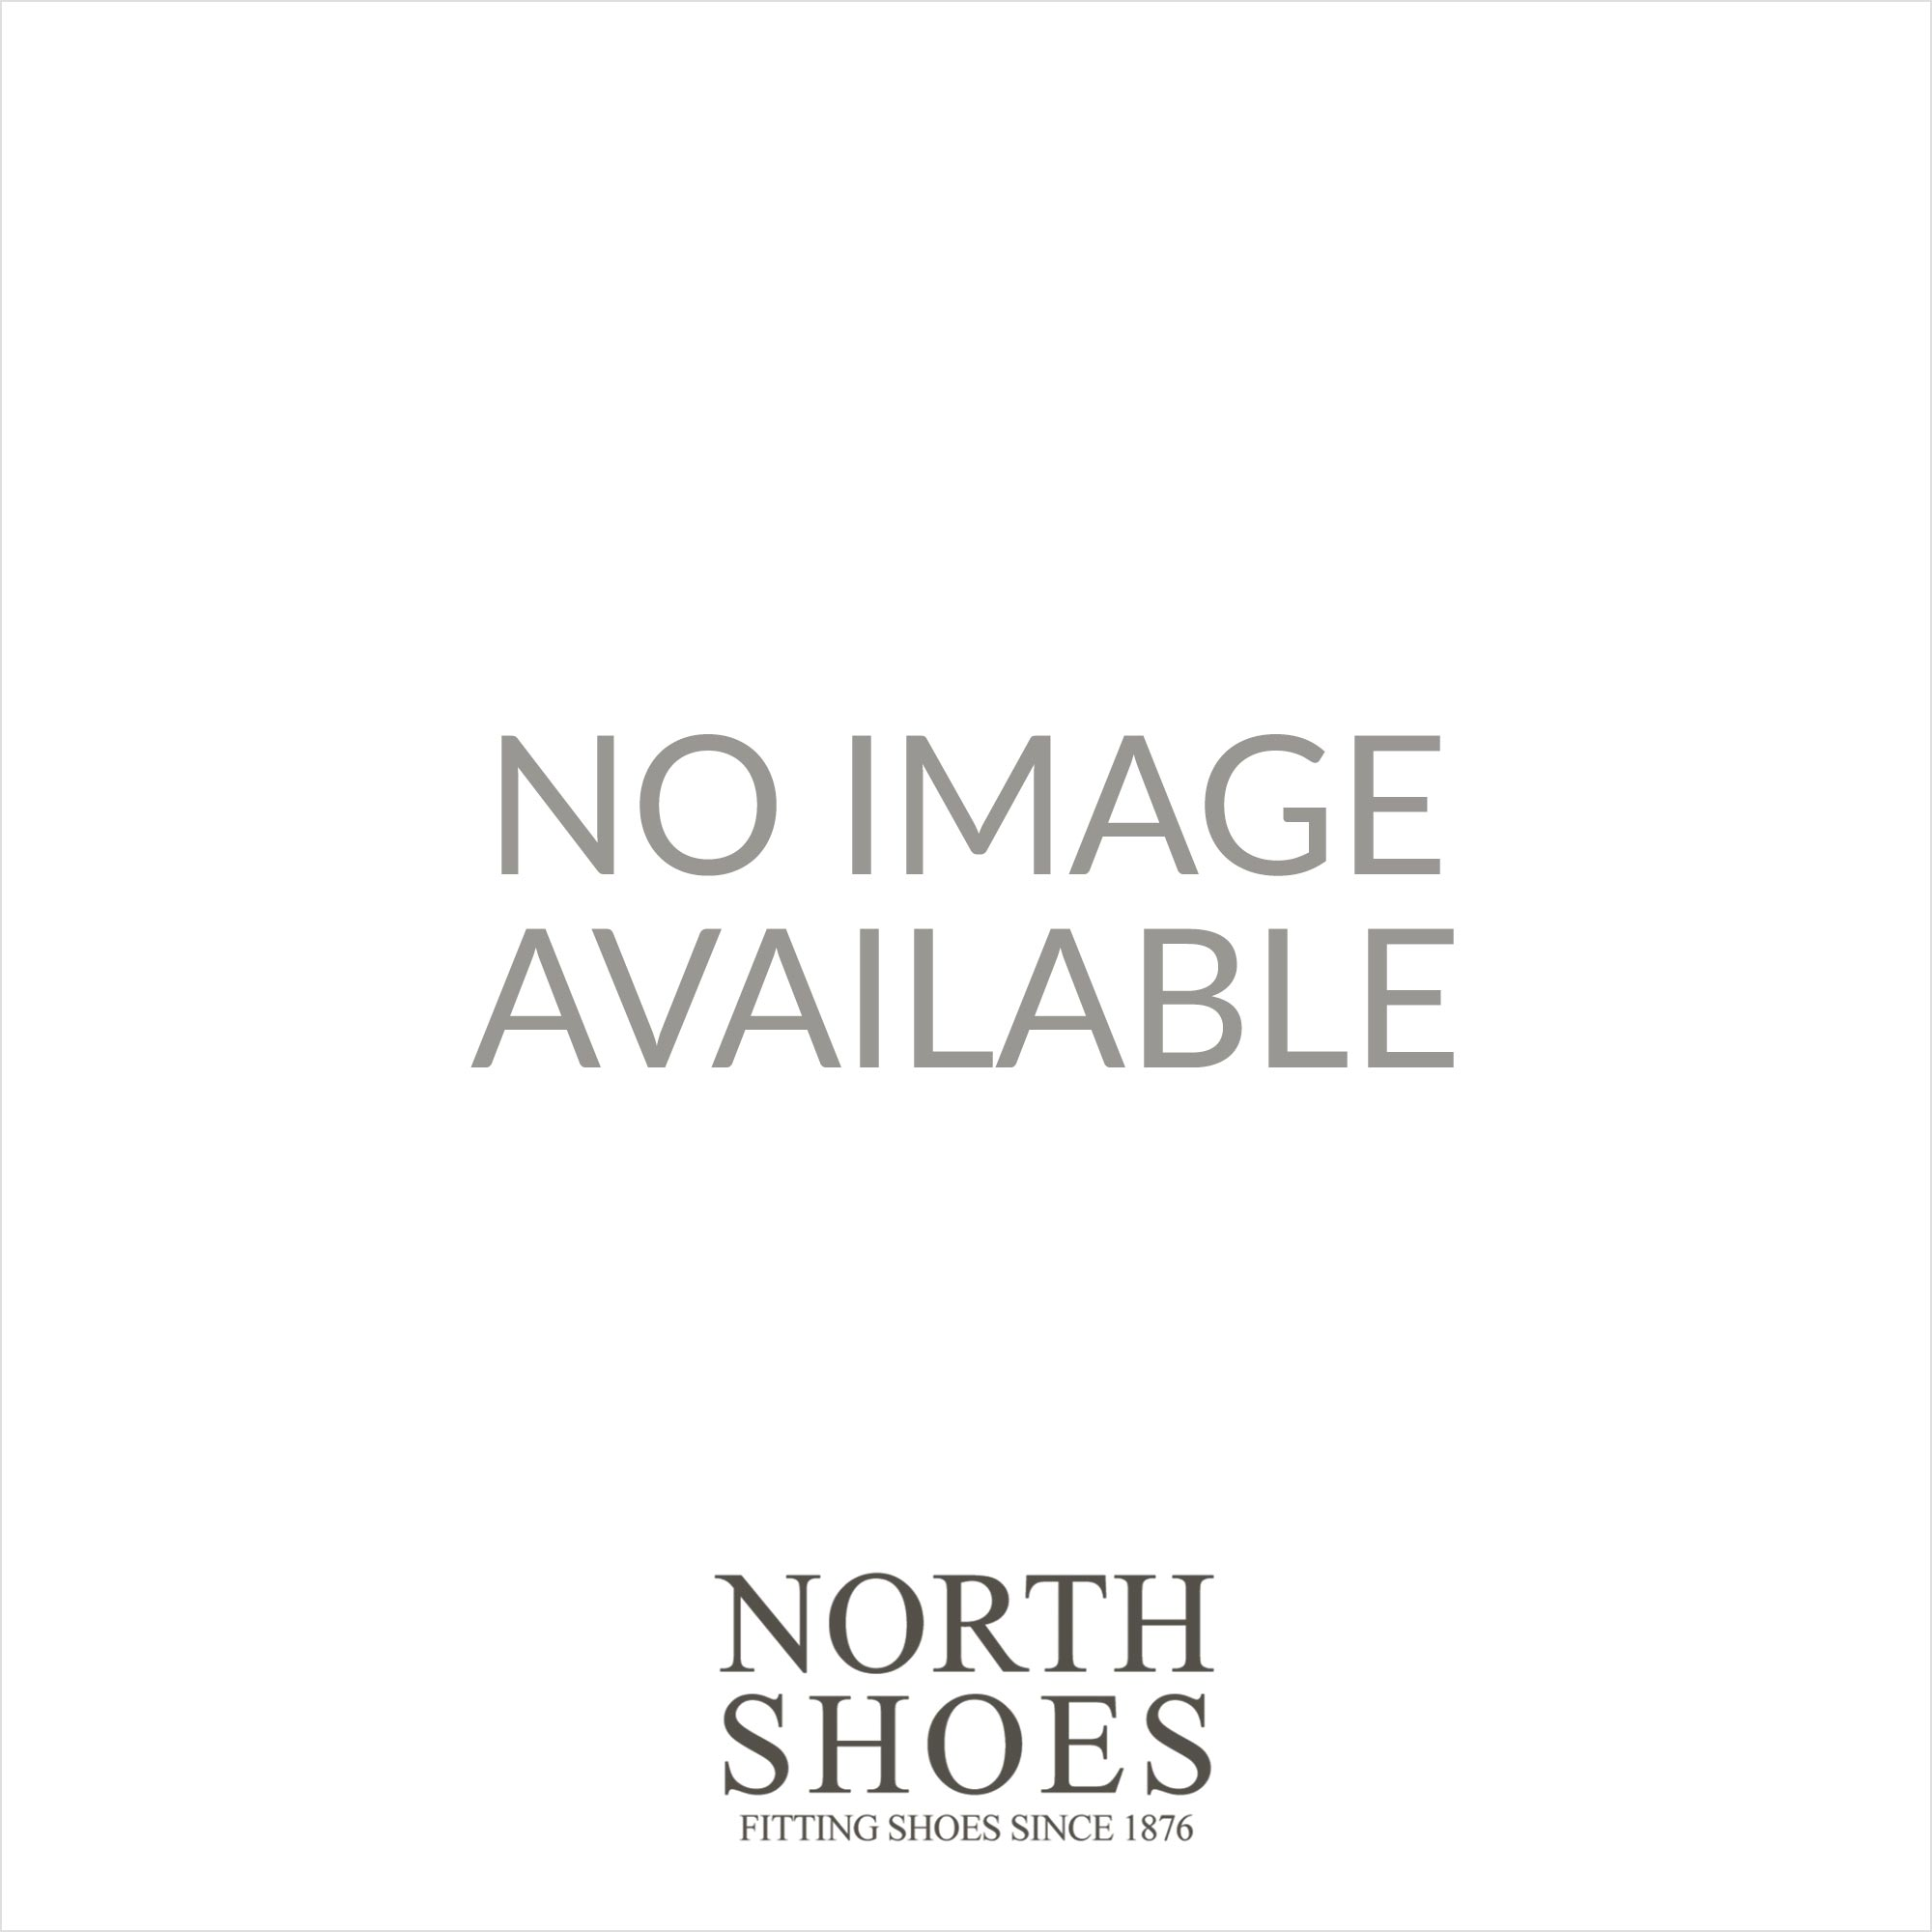 authentic quality latest shoes for cheap Clarks Orabella Fern Black Leather Womens T Bar Heeled Shoes - UK 4